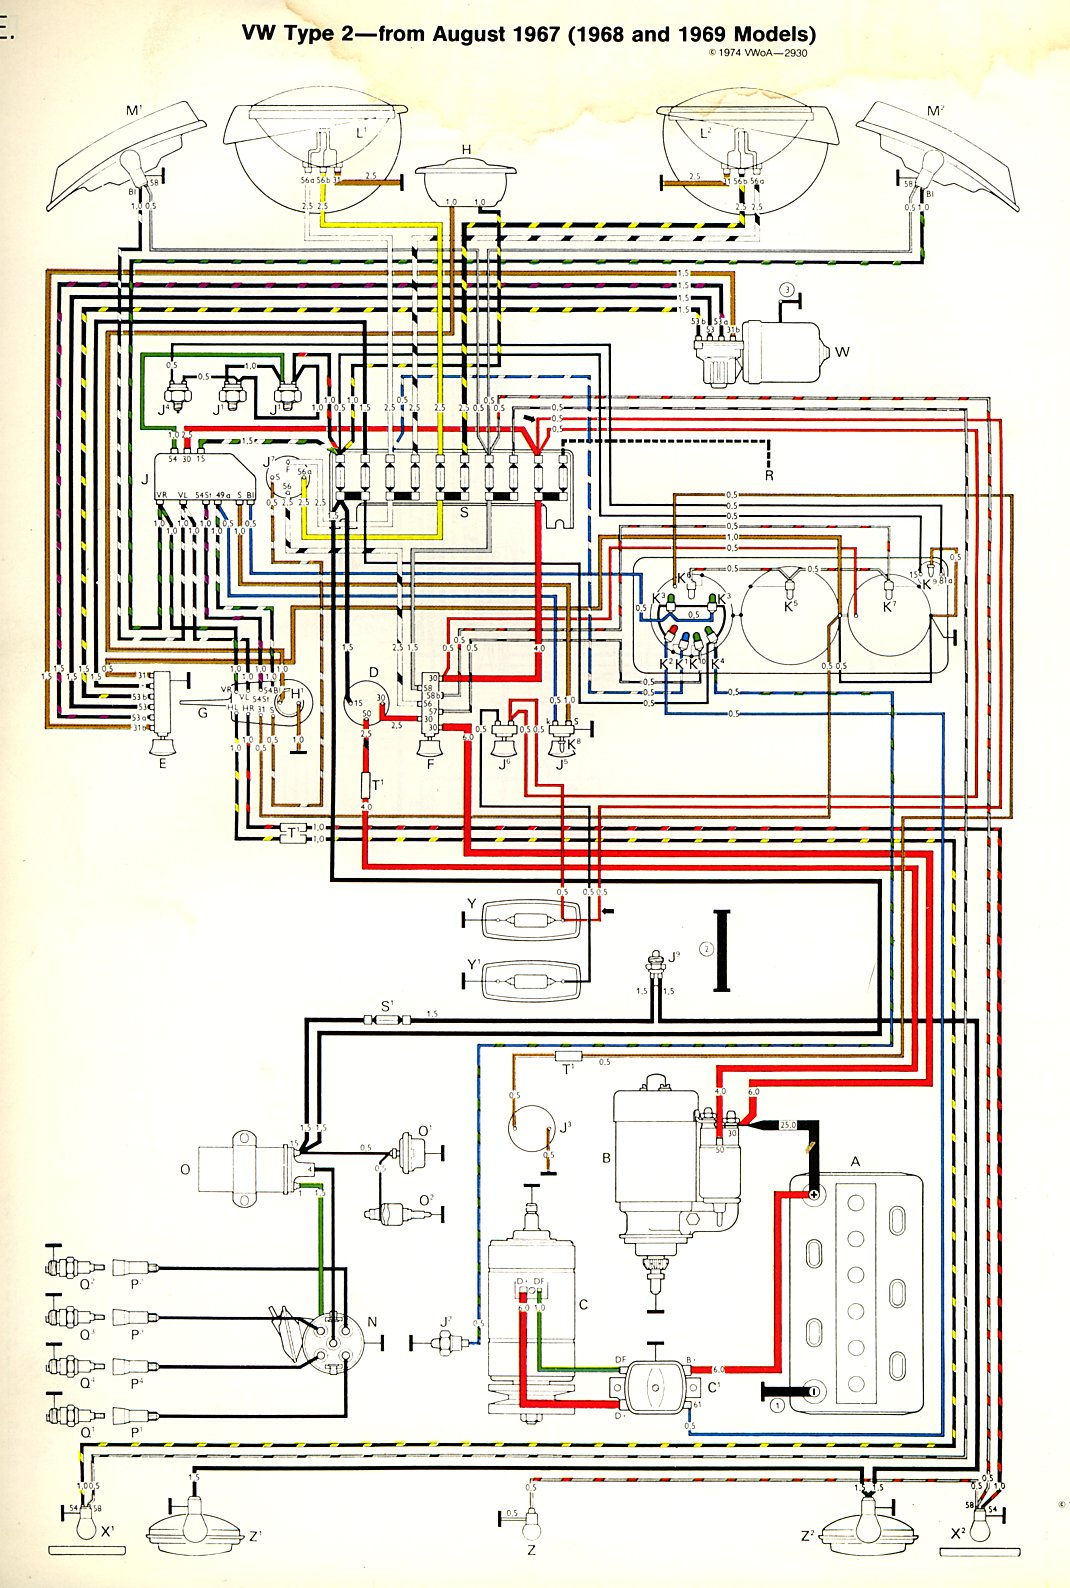 baybus_6869a thesamba com type 2 wiring diagrams 1973 vw wiring diagram at pacquiaovsvargaslive.co